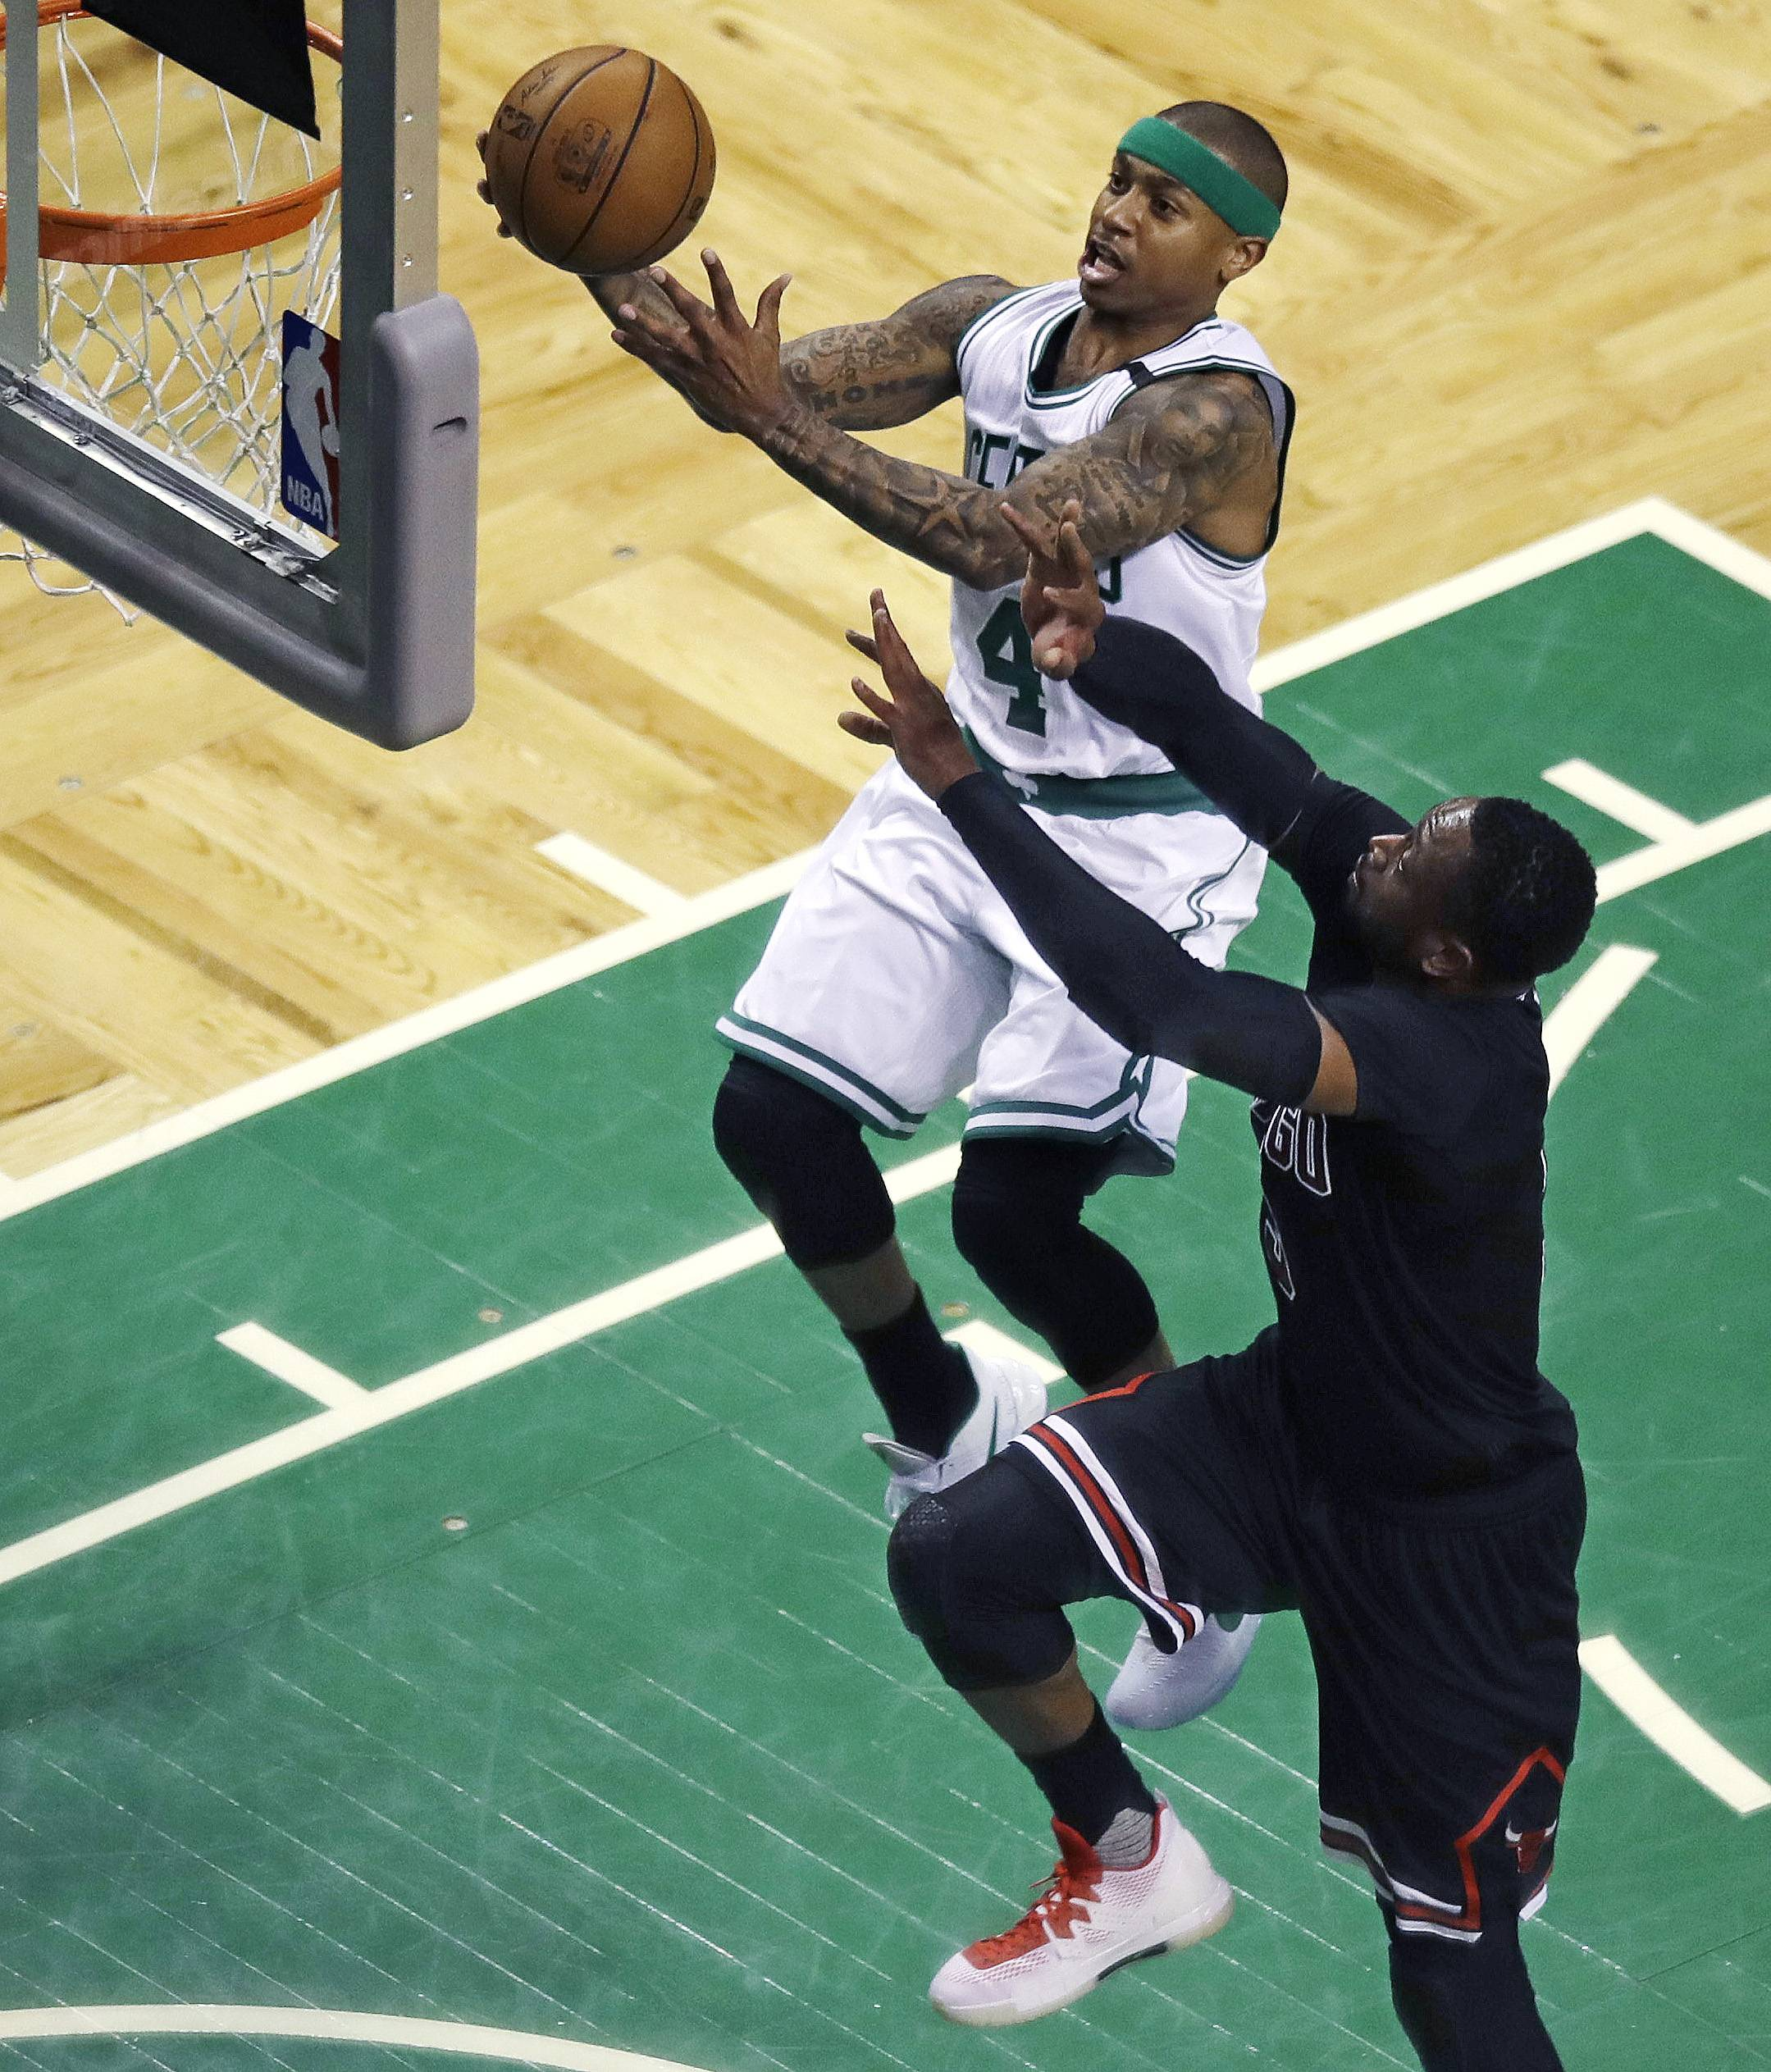 Boston Celtics guard Isaiah Thomas (4) drive to the basket against Chicago Bulls guard Dwyane Wade during the first quarter of a first-round NBA playoff basketball game in Boston, Wednesday, April 26, 2017.